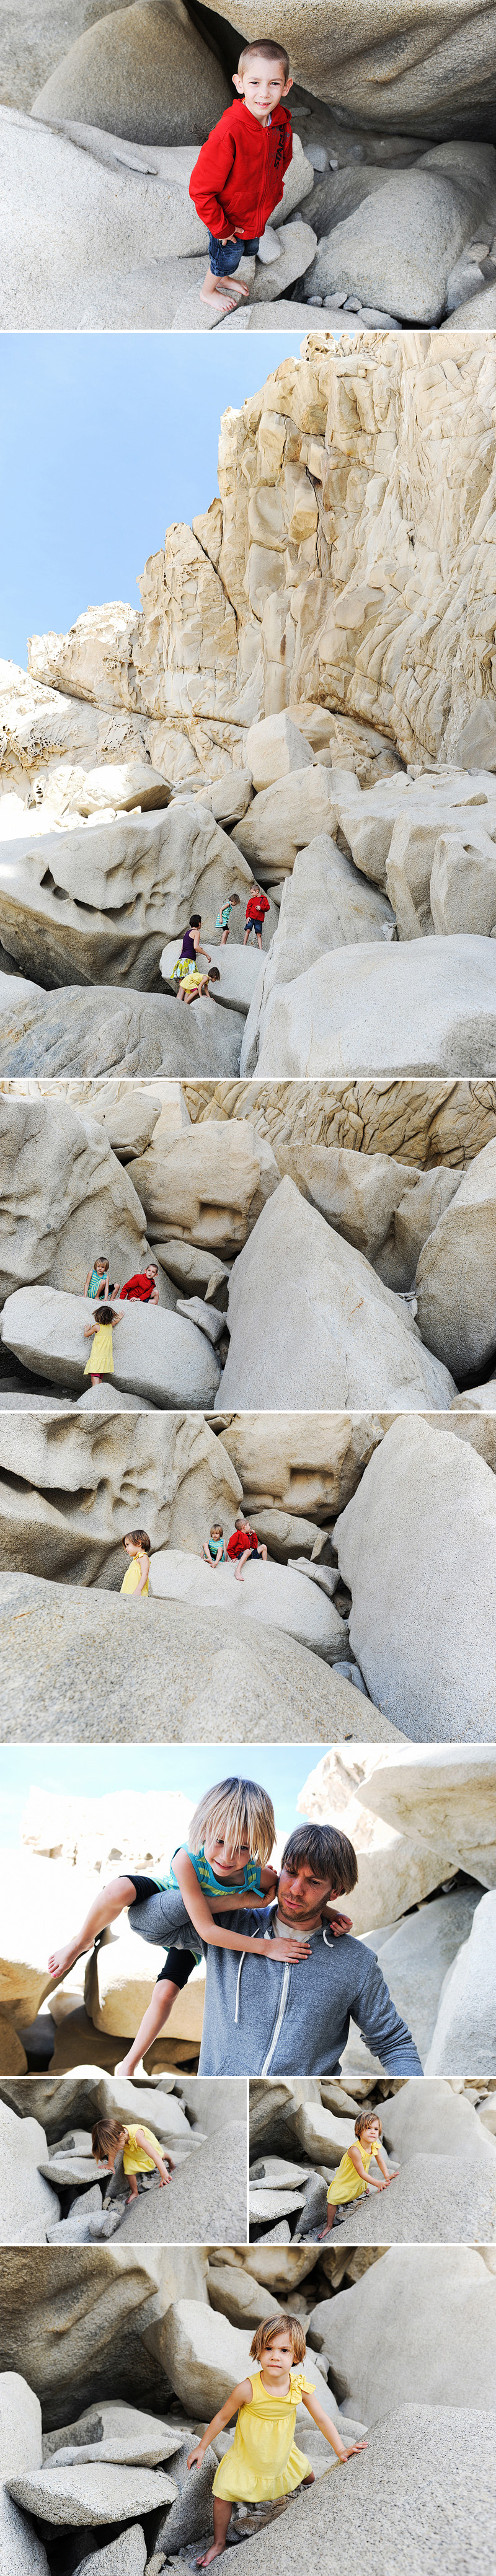 climbing on rocks at lovers beach in cabo